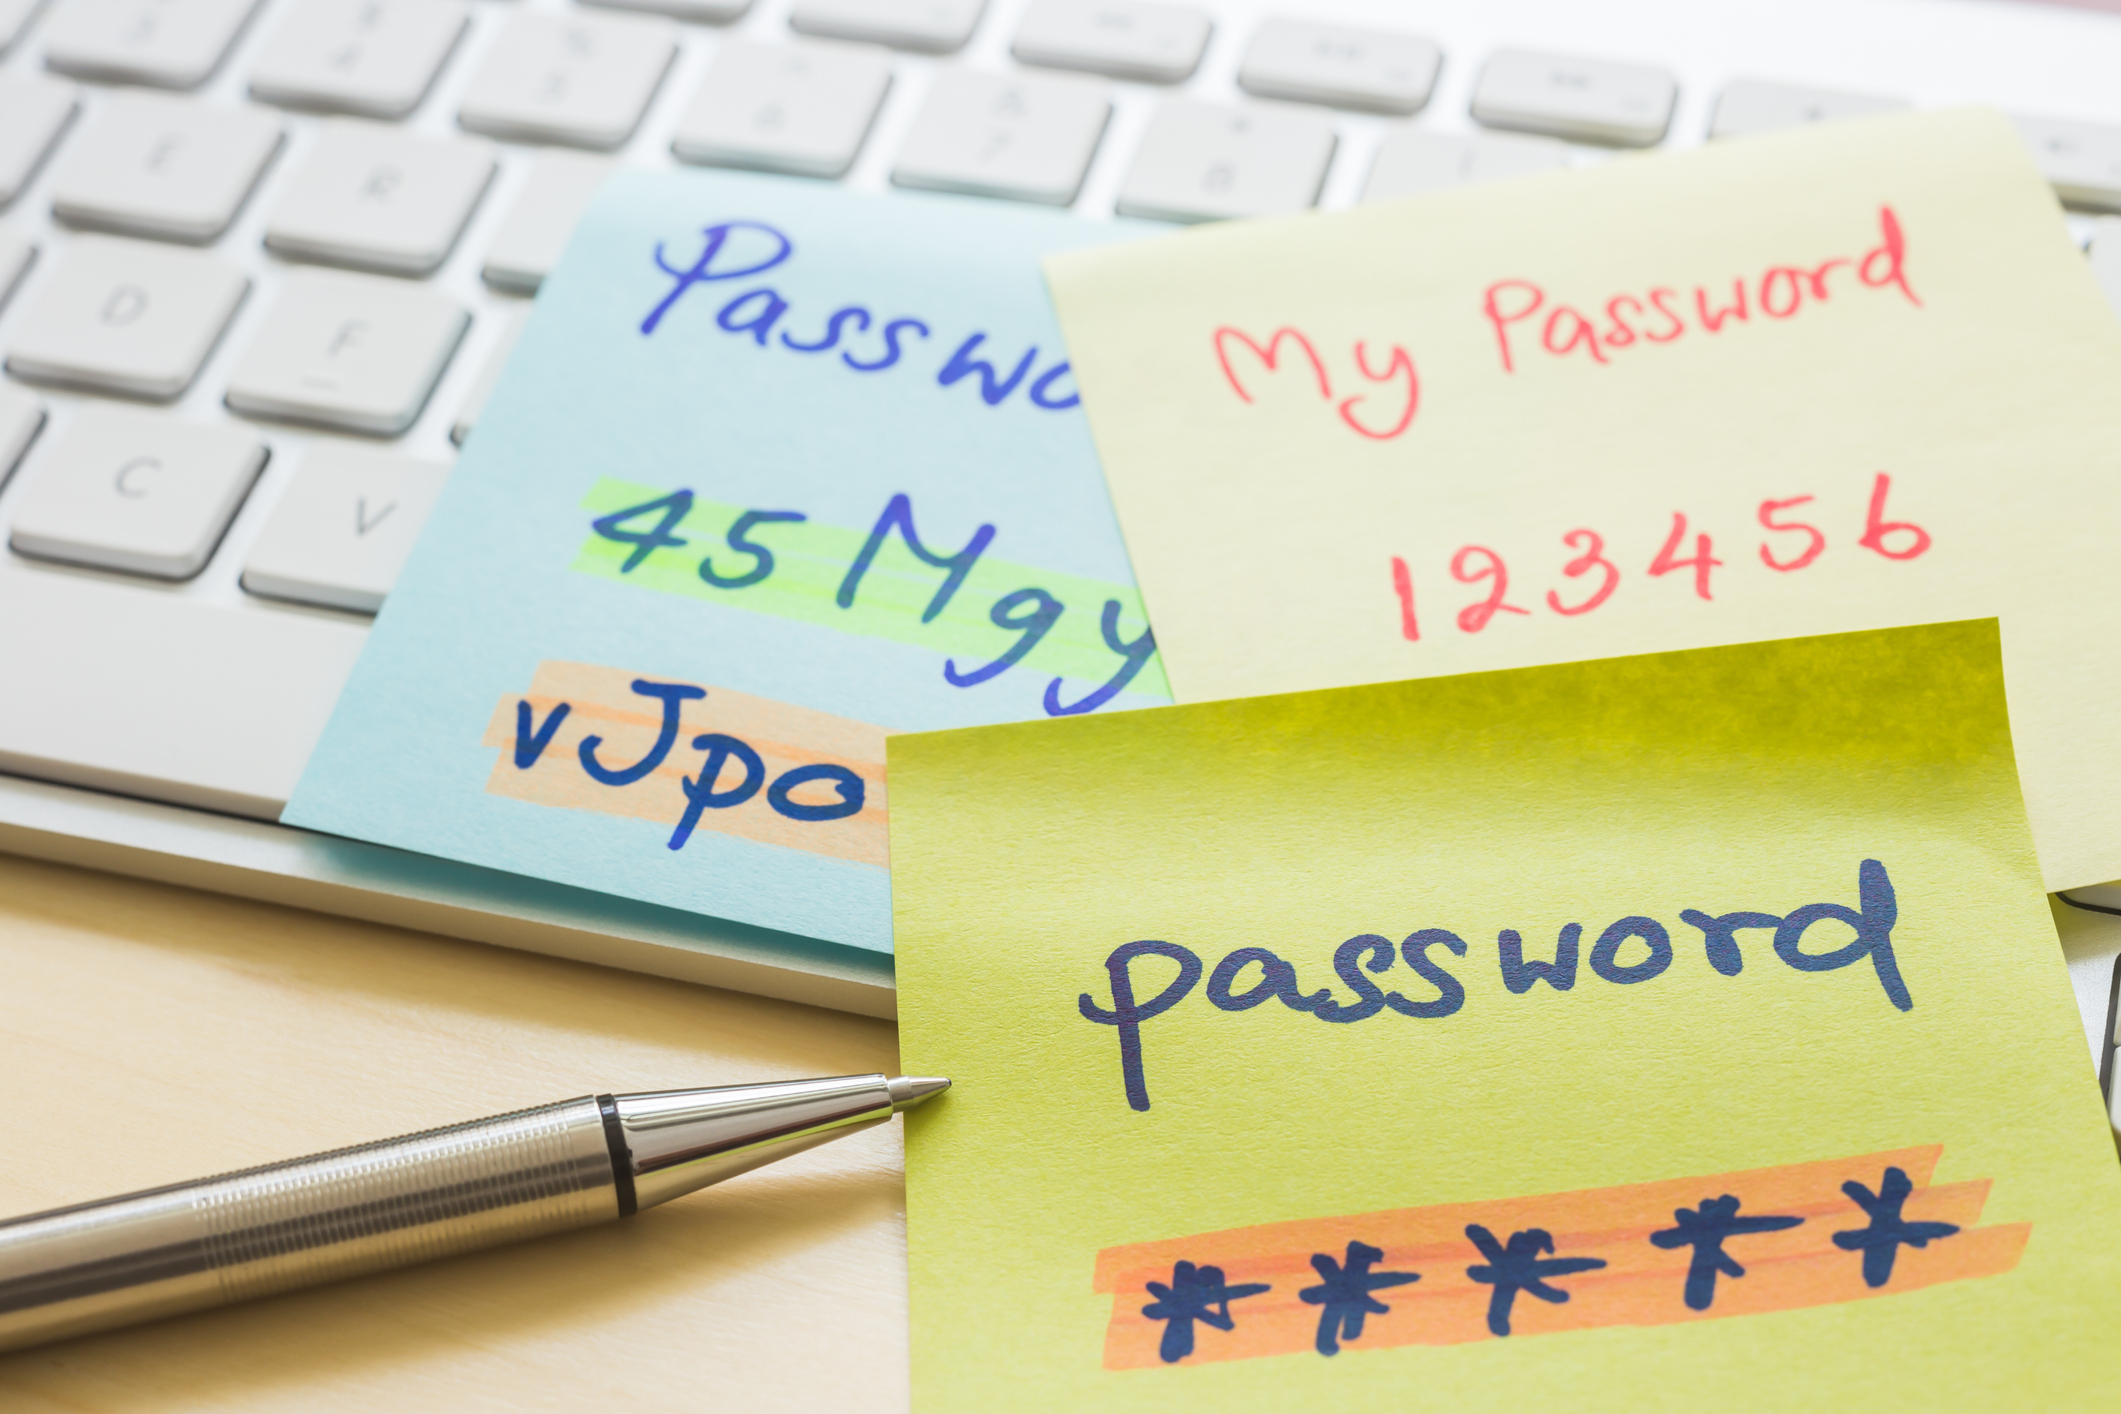 The fundamentals of password security